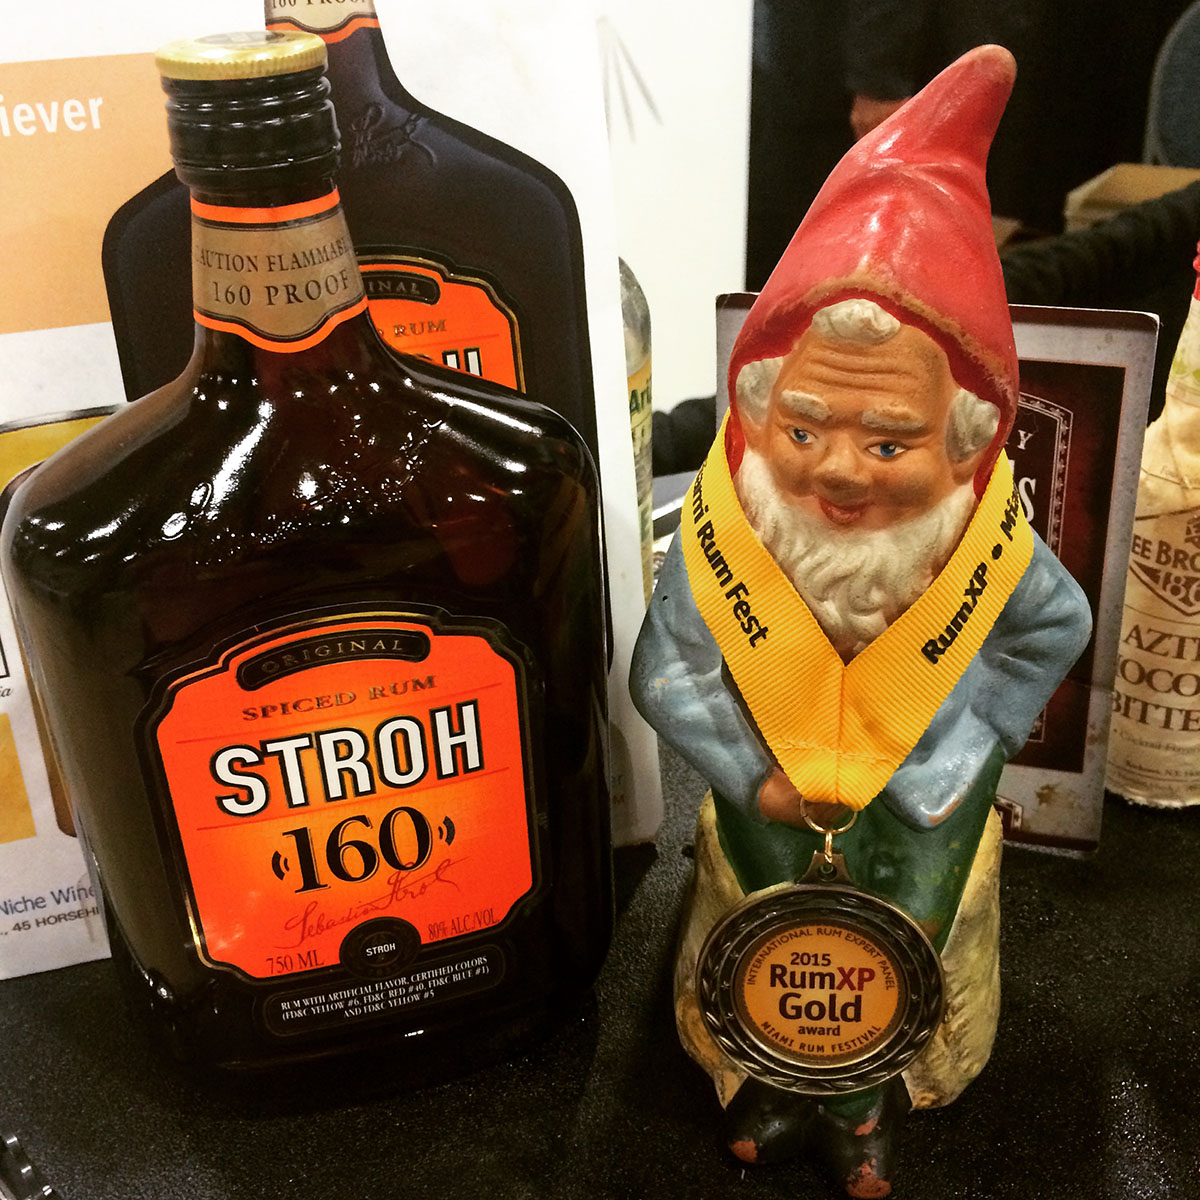 Stroh 160 with Klaus the Soused Gnome